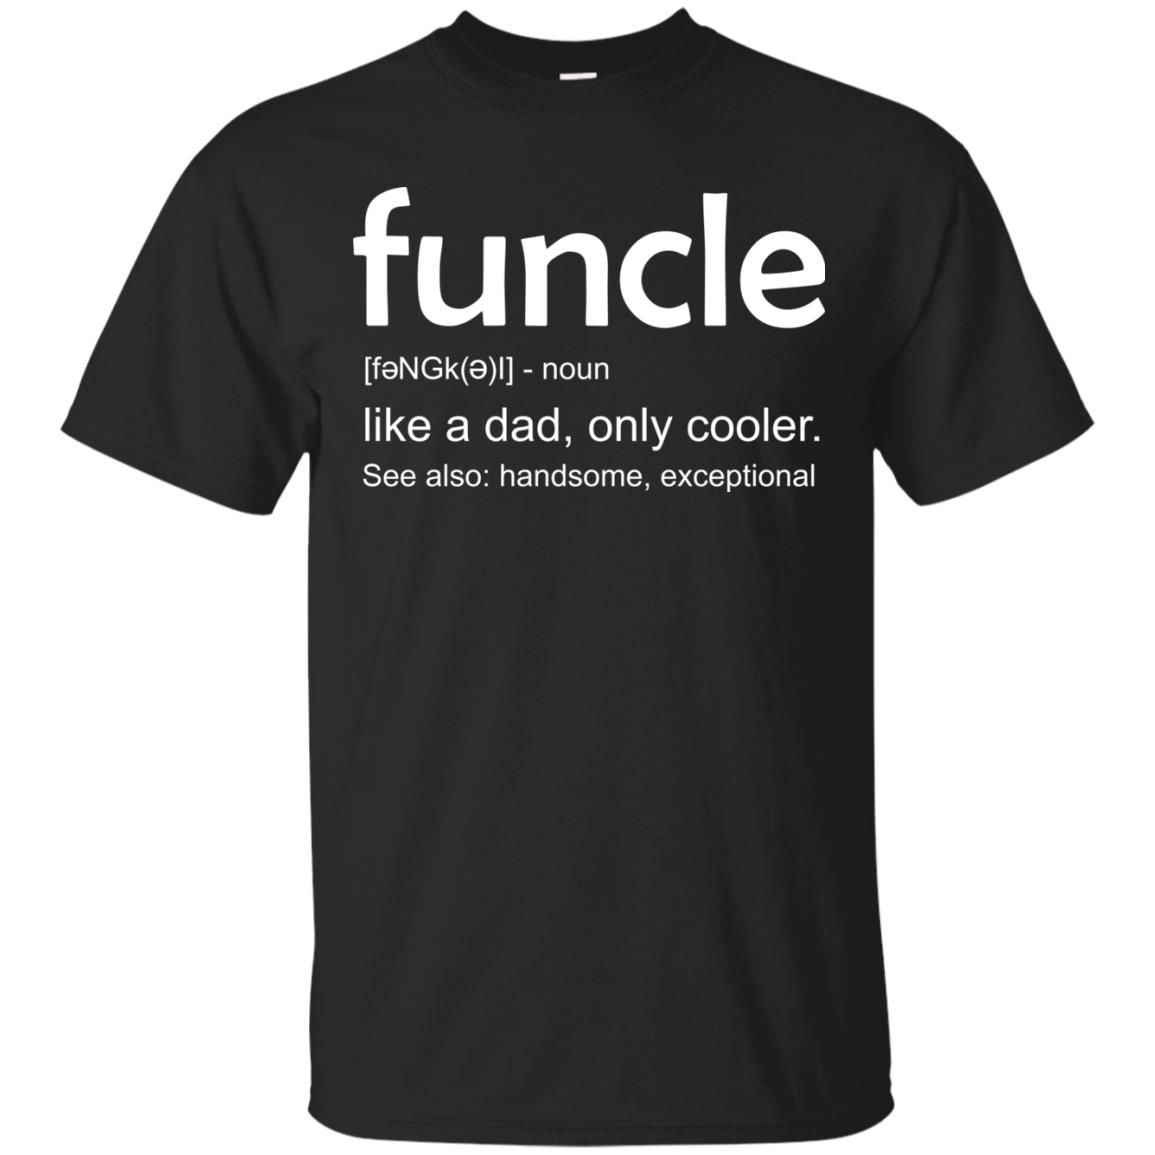 d687bde2 funcle t-shirt: Funcle Definition Like A Dad Only Cooler - Rockatee